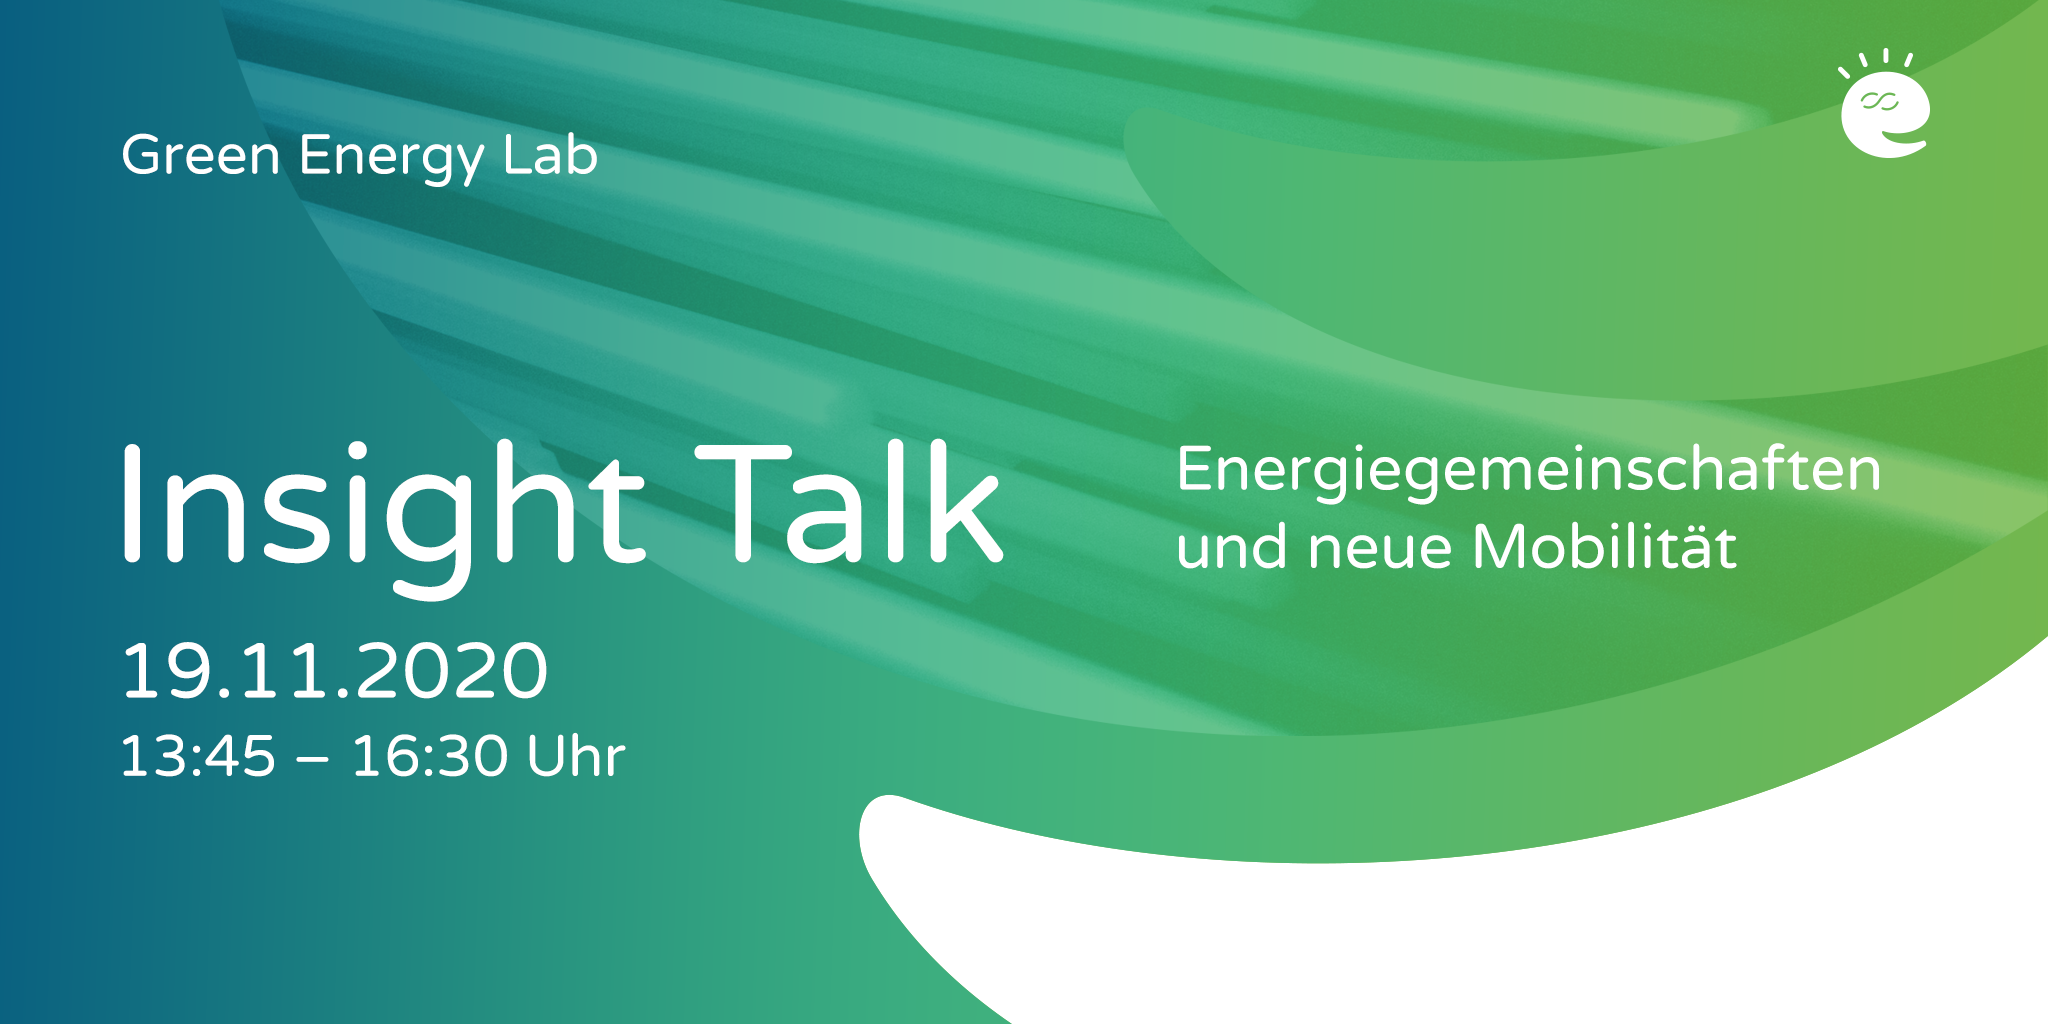 Angela Muth Zum Thema MaaS Beim Insight Talk Des Green Energy Lab